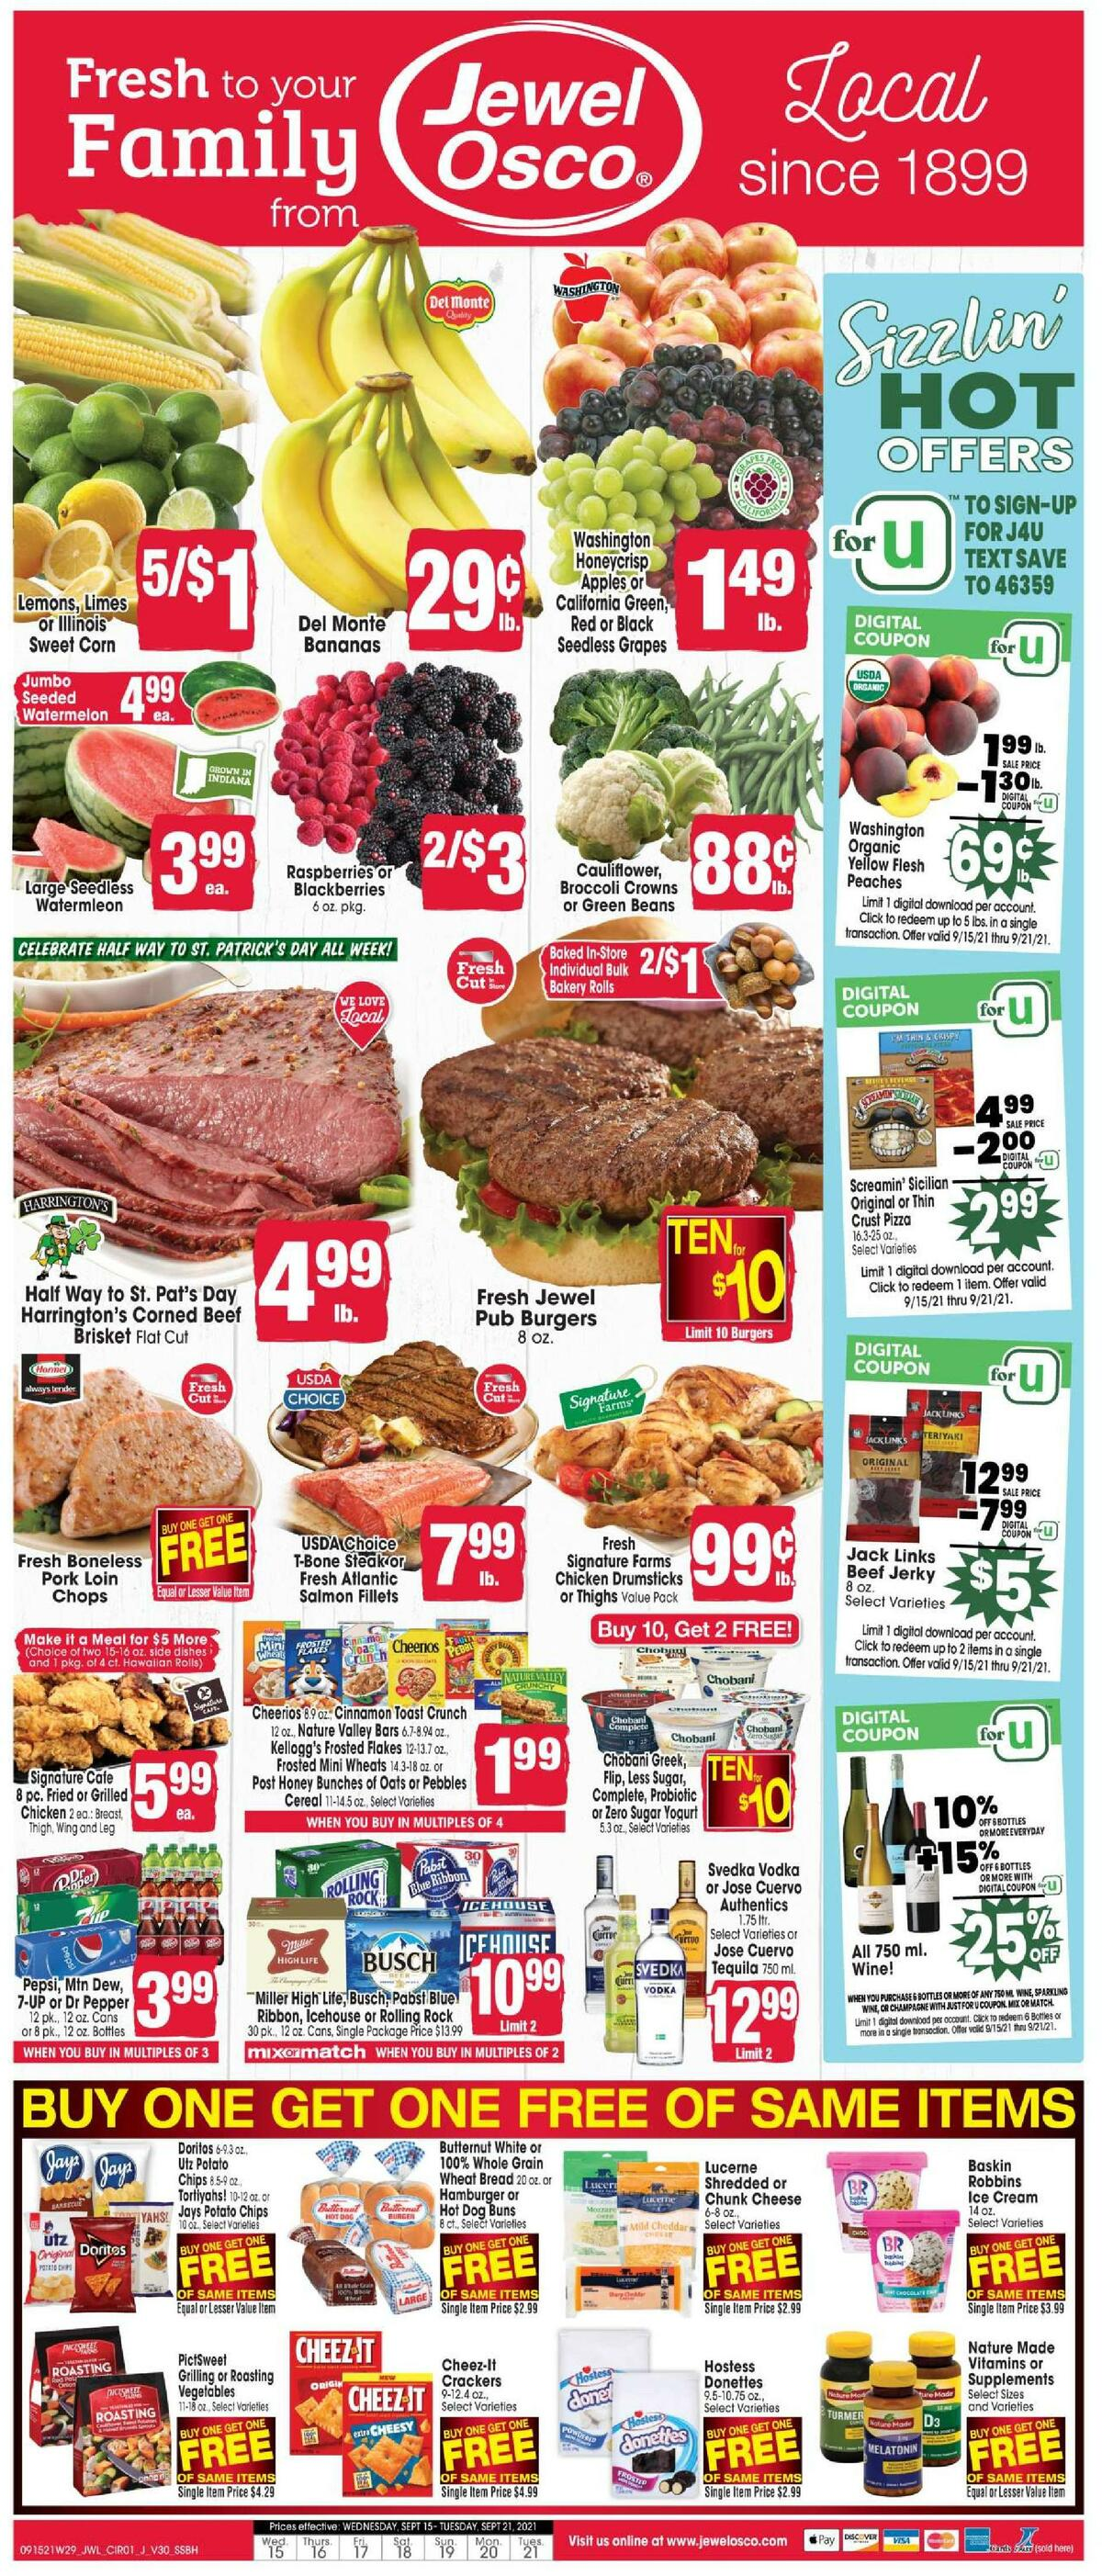 Jewel Osco Weekly Ad from September 15